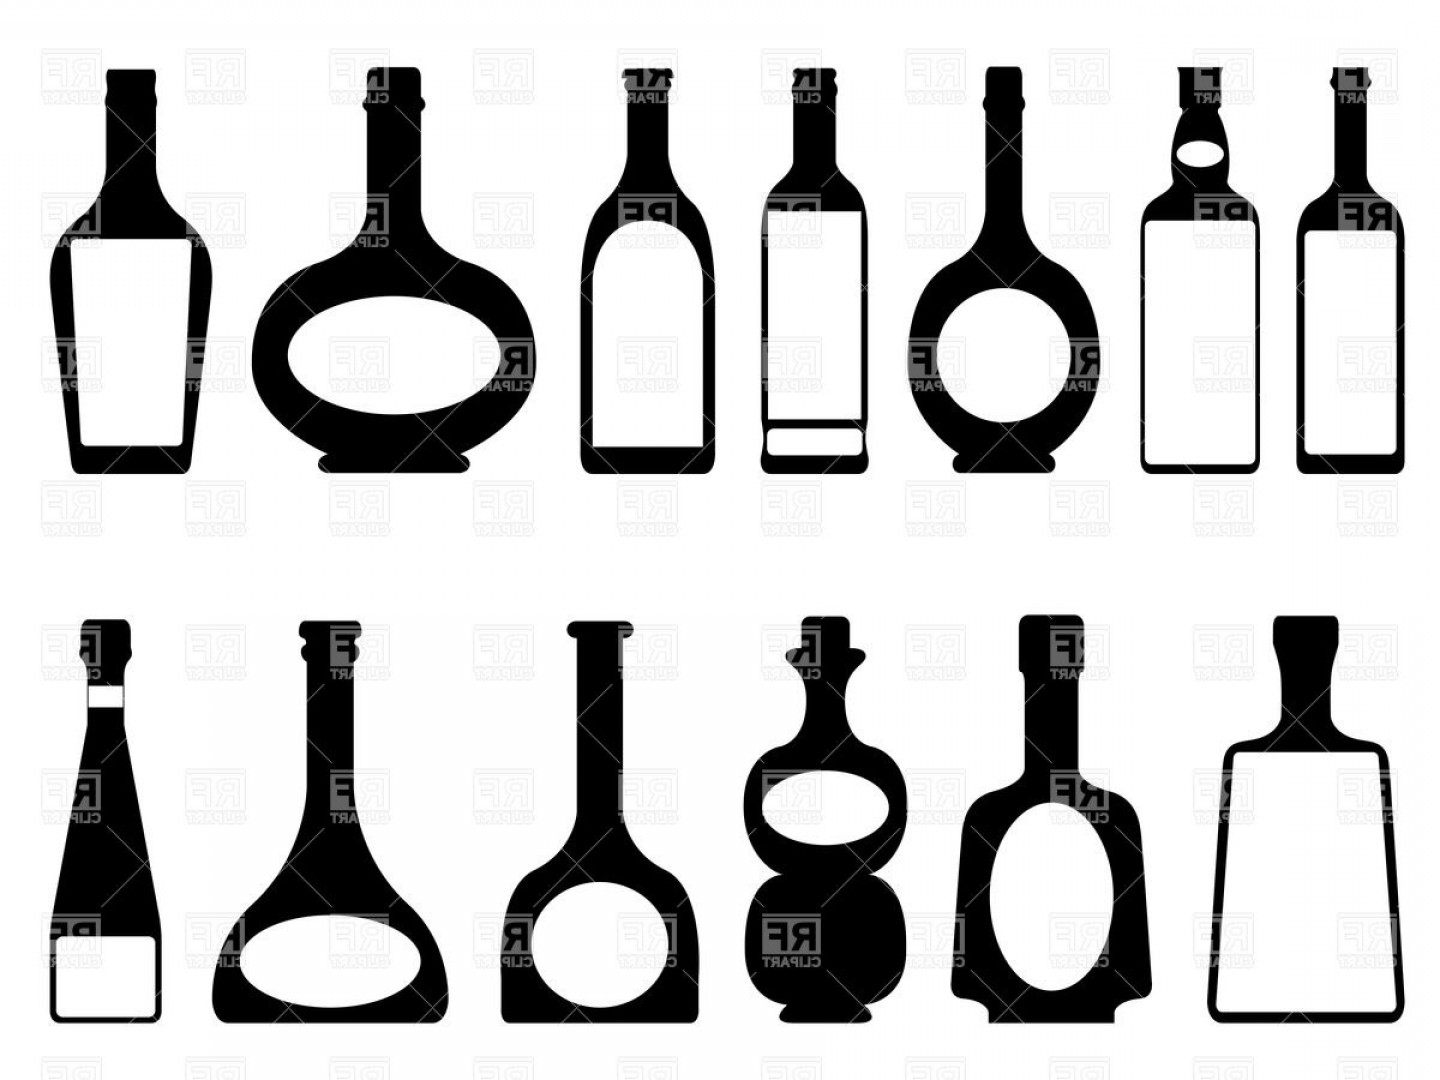 Alcohol Vector: Silhouettes Of Bottles Of Alcohol Vector Clipart